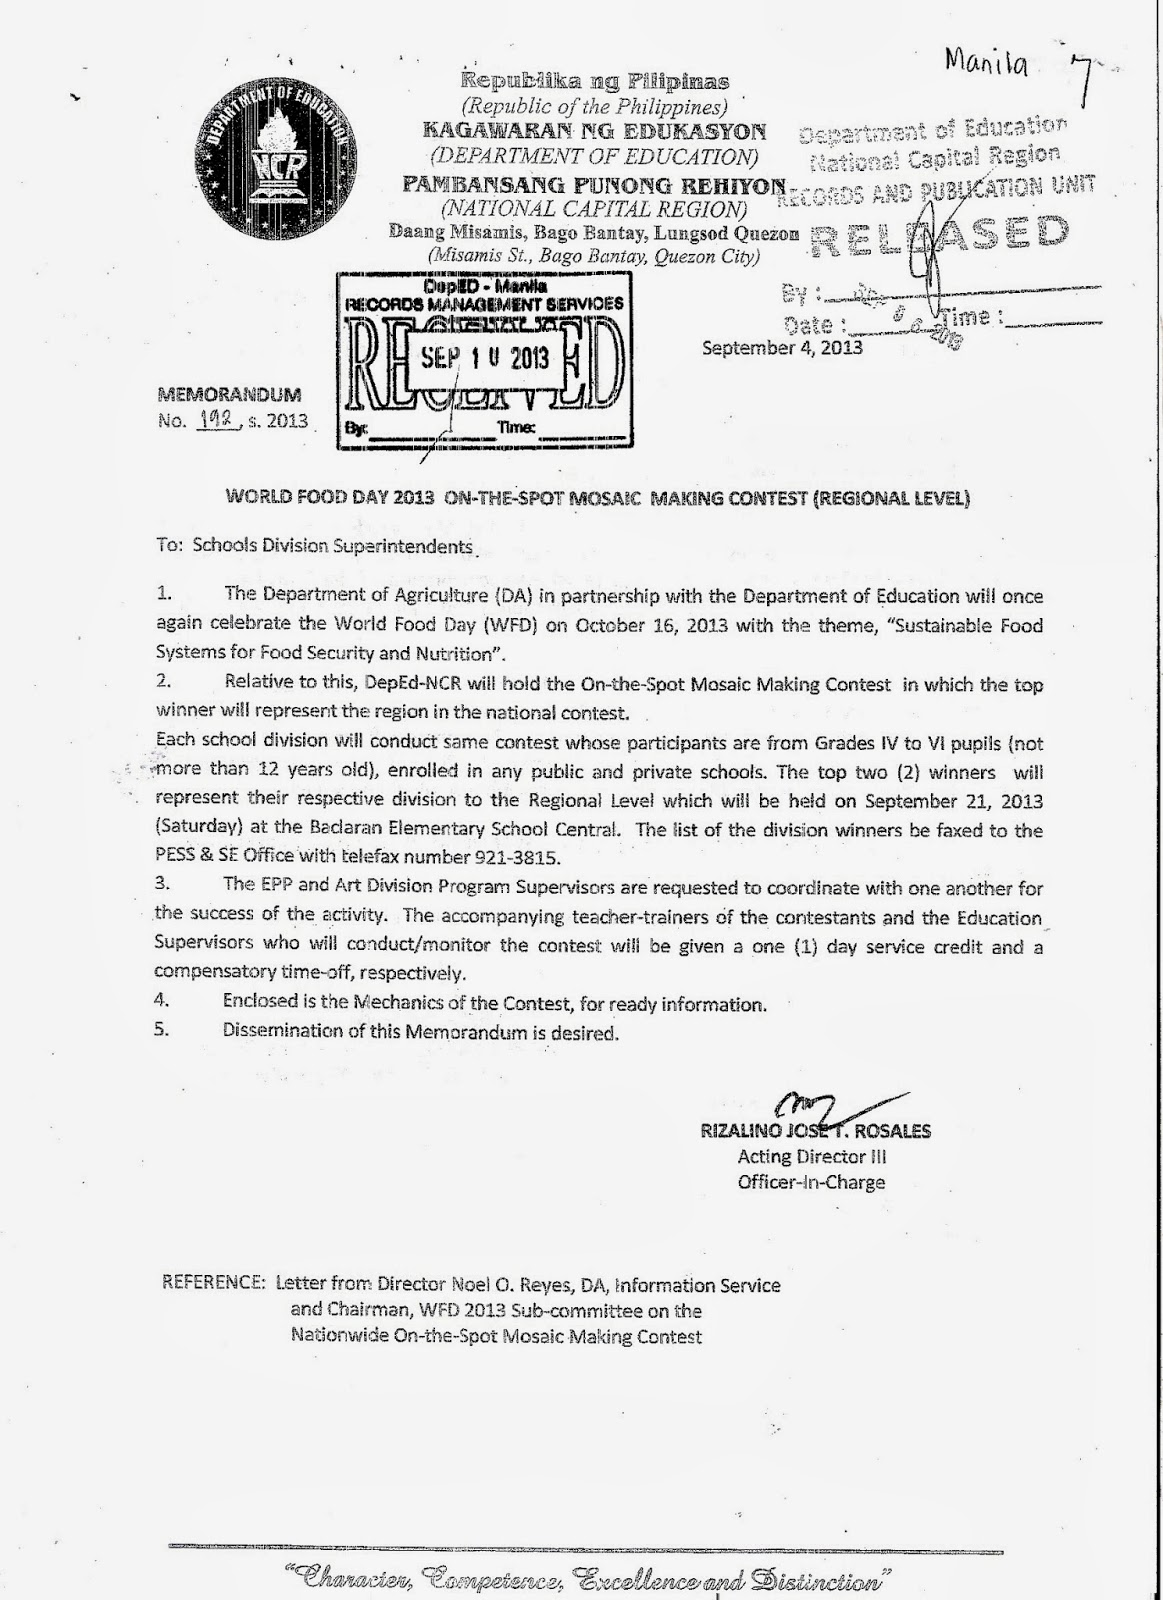 Department of Education Manila: Division Memorandum No